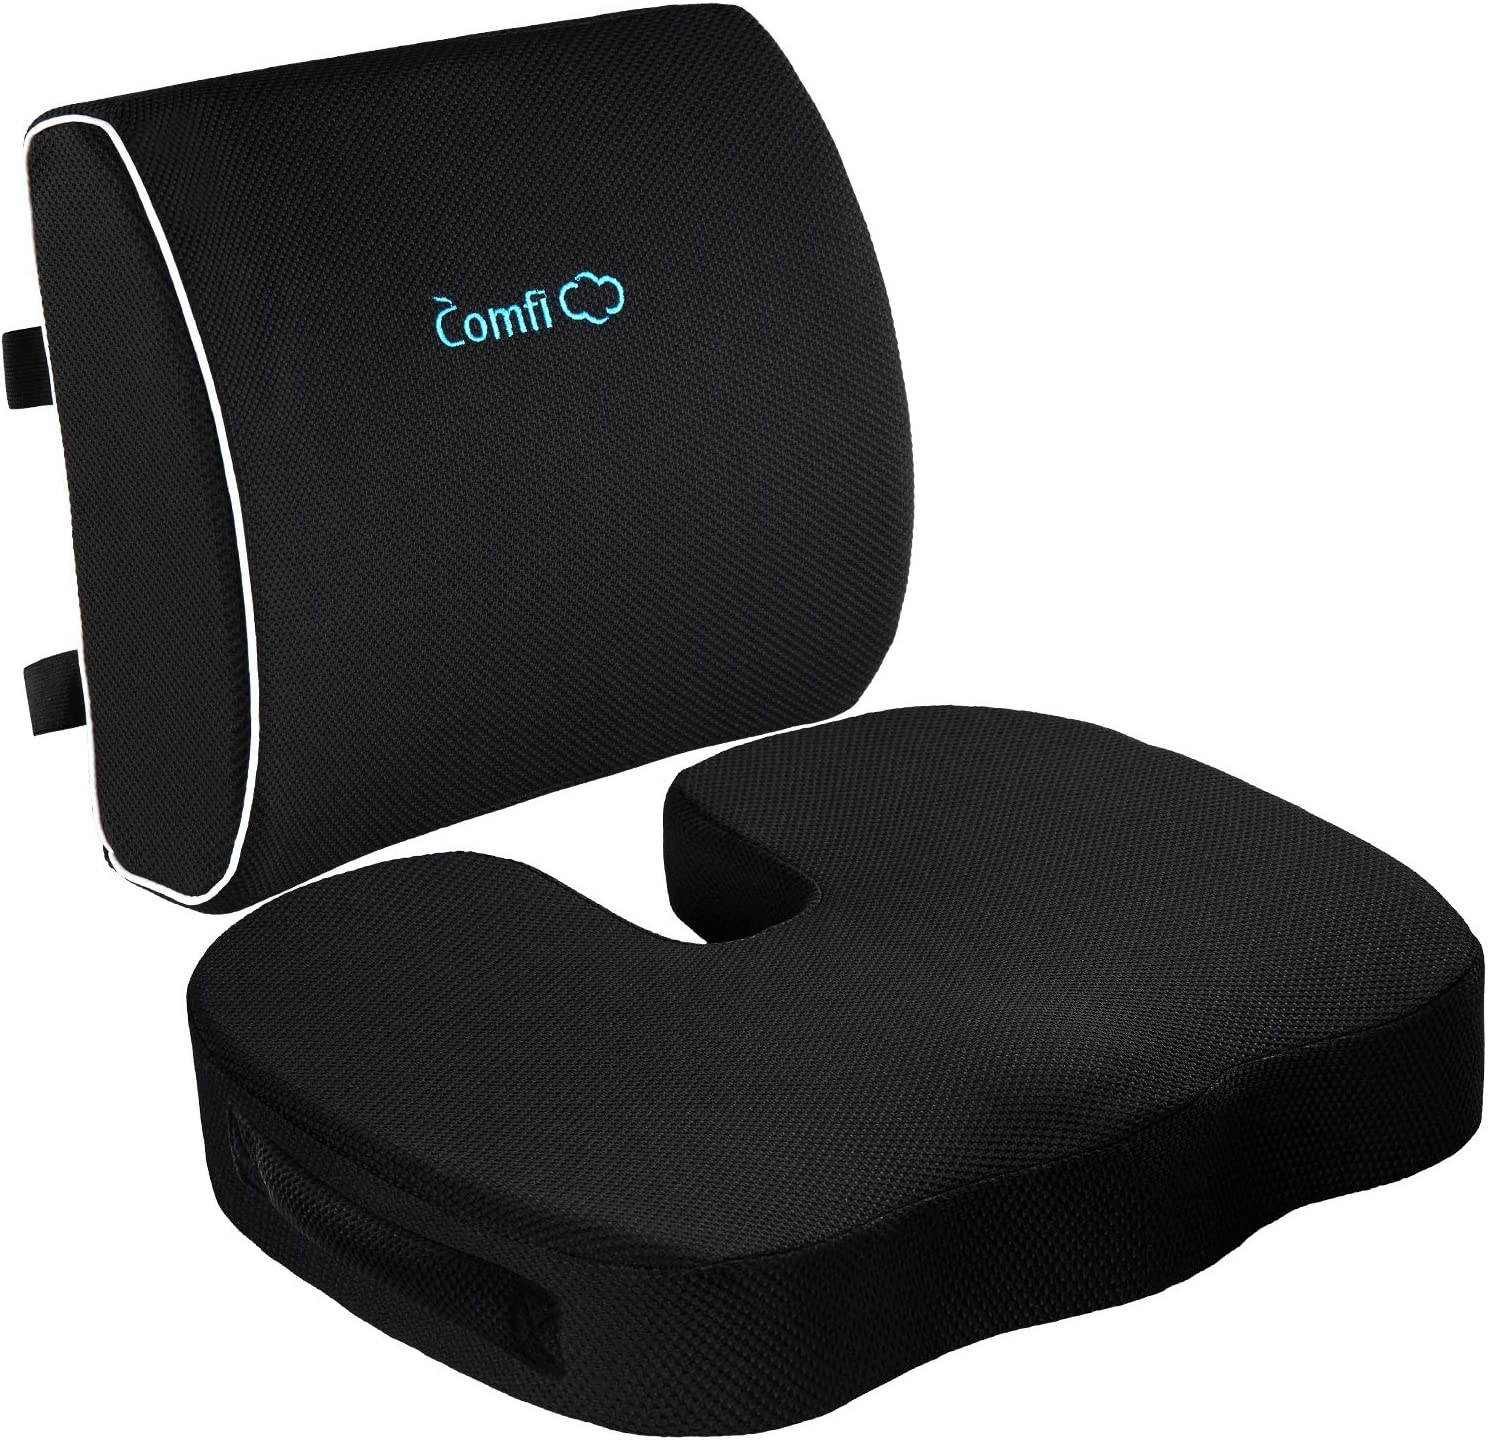 Coccyx Seat Cushion and Lumbar Support Pillow for Office Chair-Gel Infused,Orthopedic Car Seat Cushion Memory Foam Back Support Cushion for Lower Back Pain,Tailbone & Sciatica Pain Relief Black